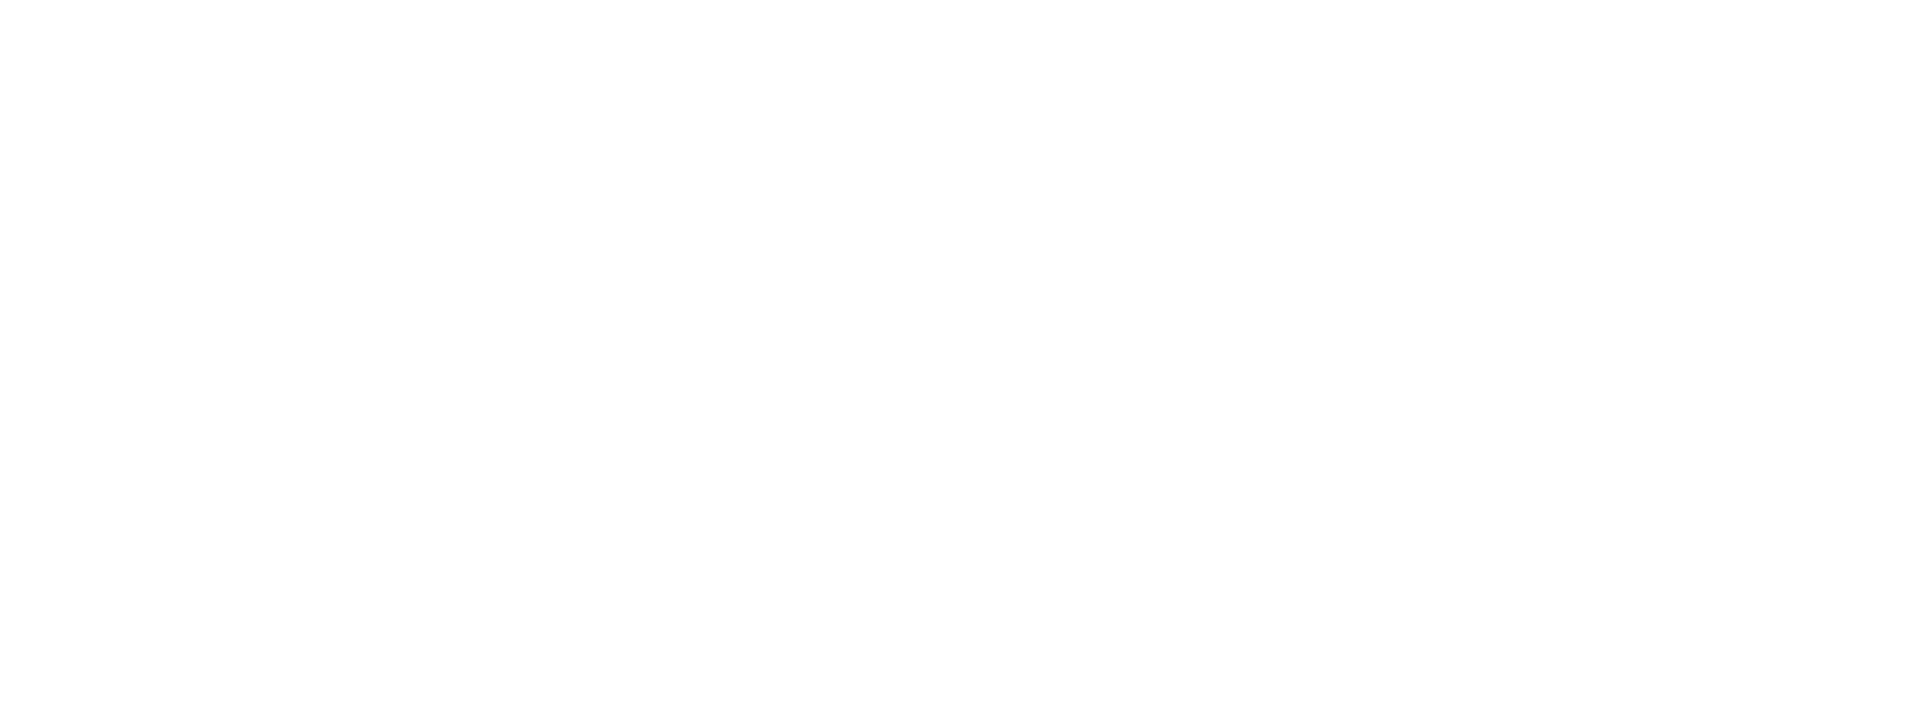 CUNY School of Labor and Urban Studies